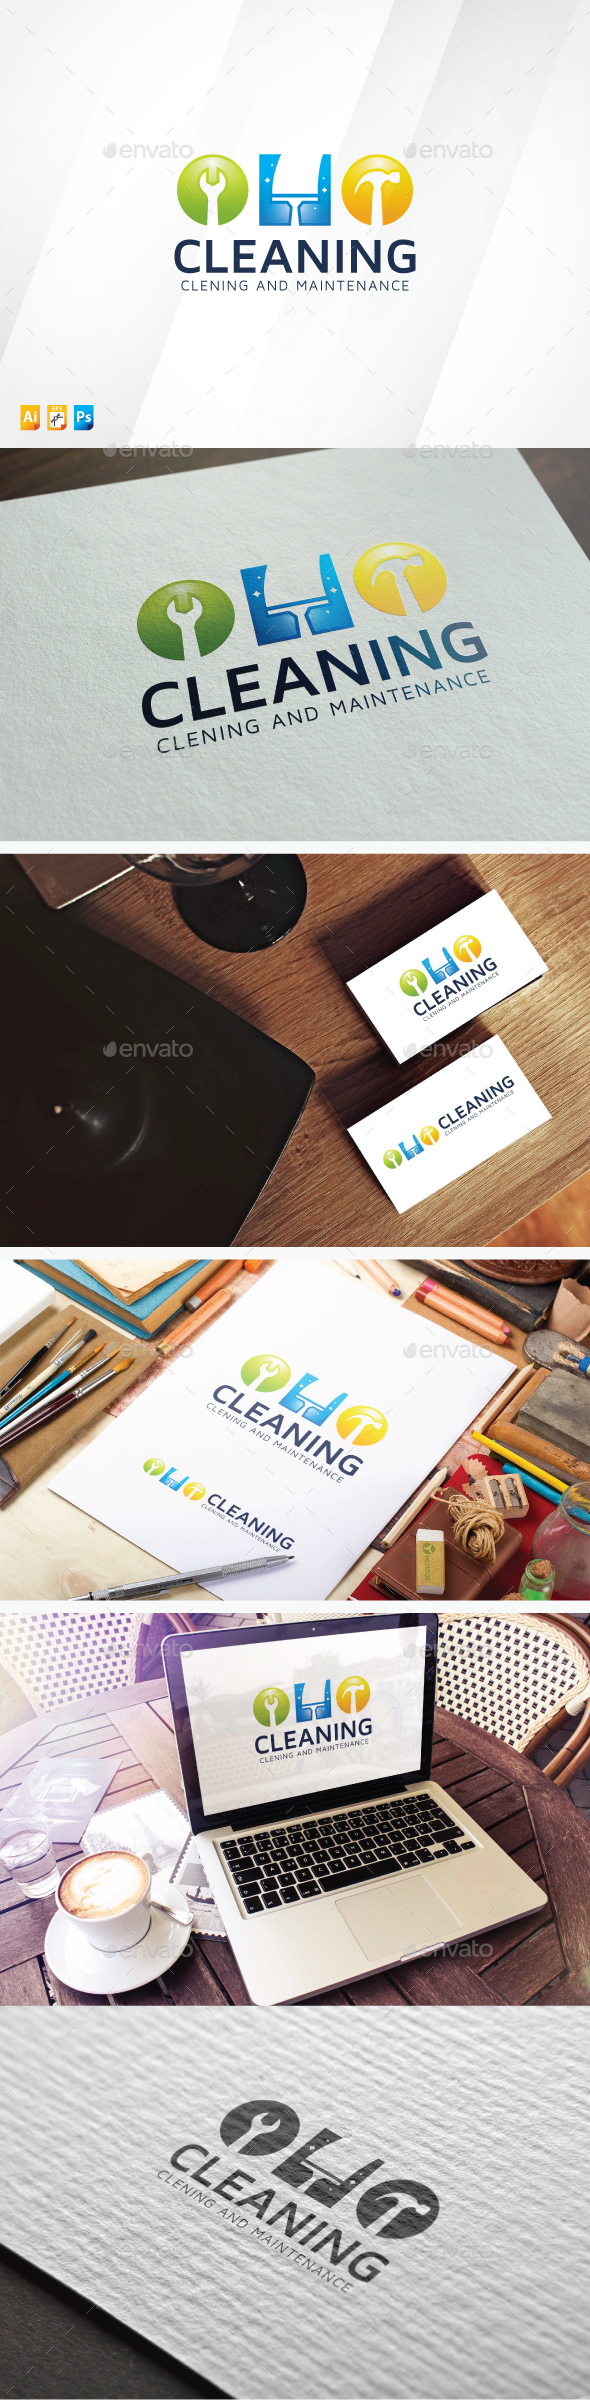 Cleaning Logo - Objects Logo Templates